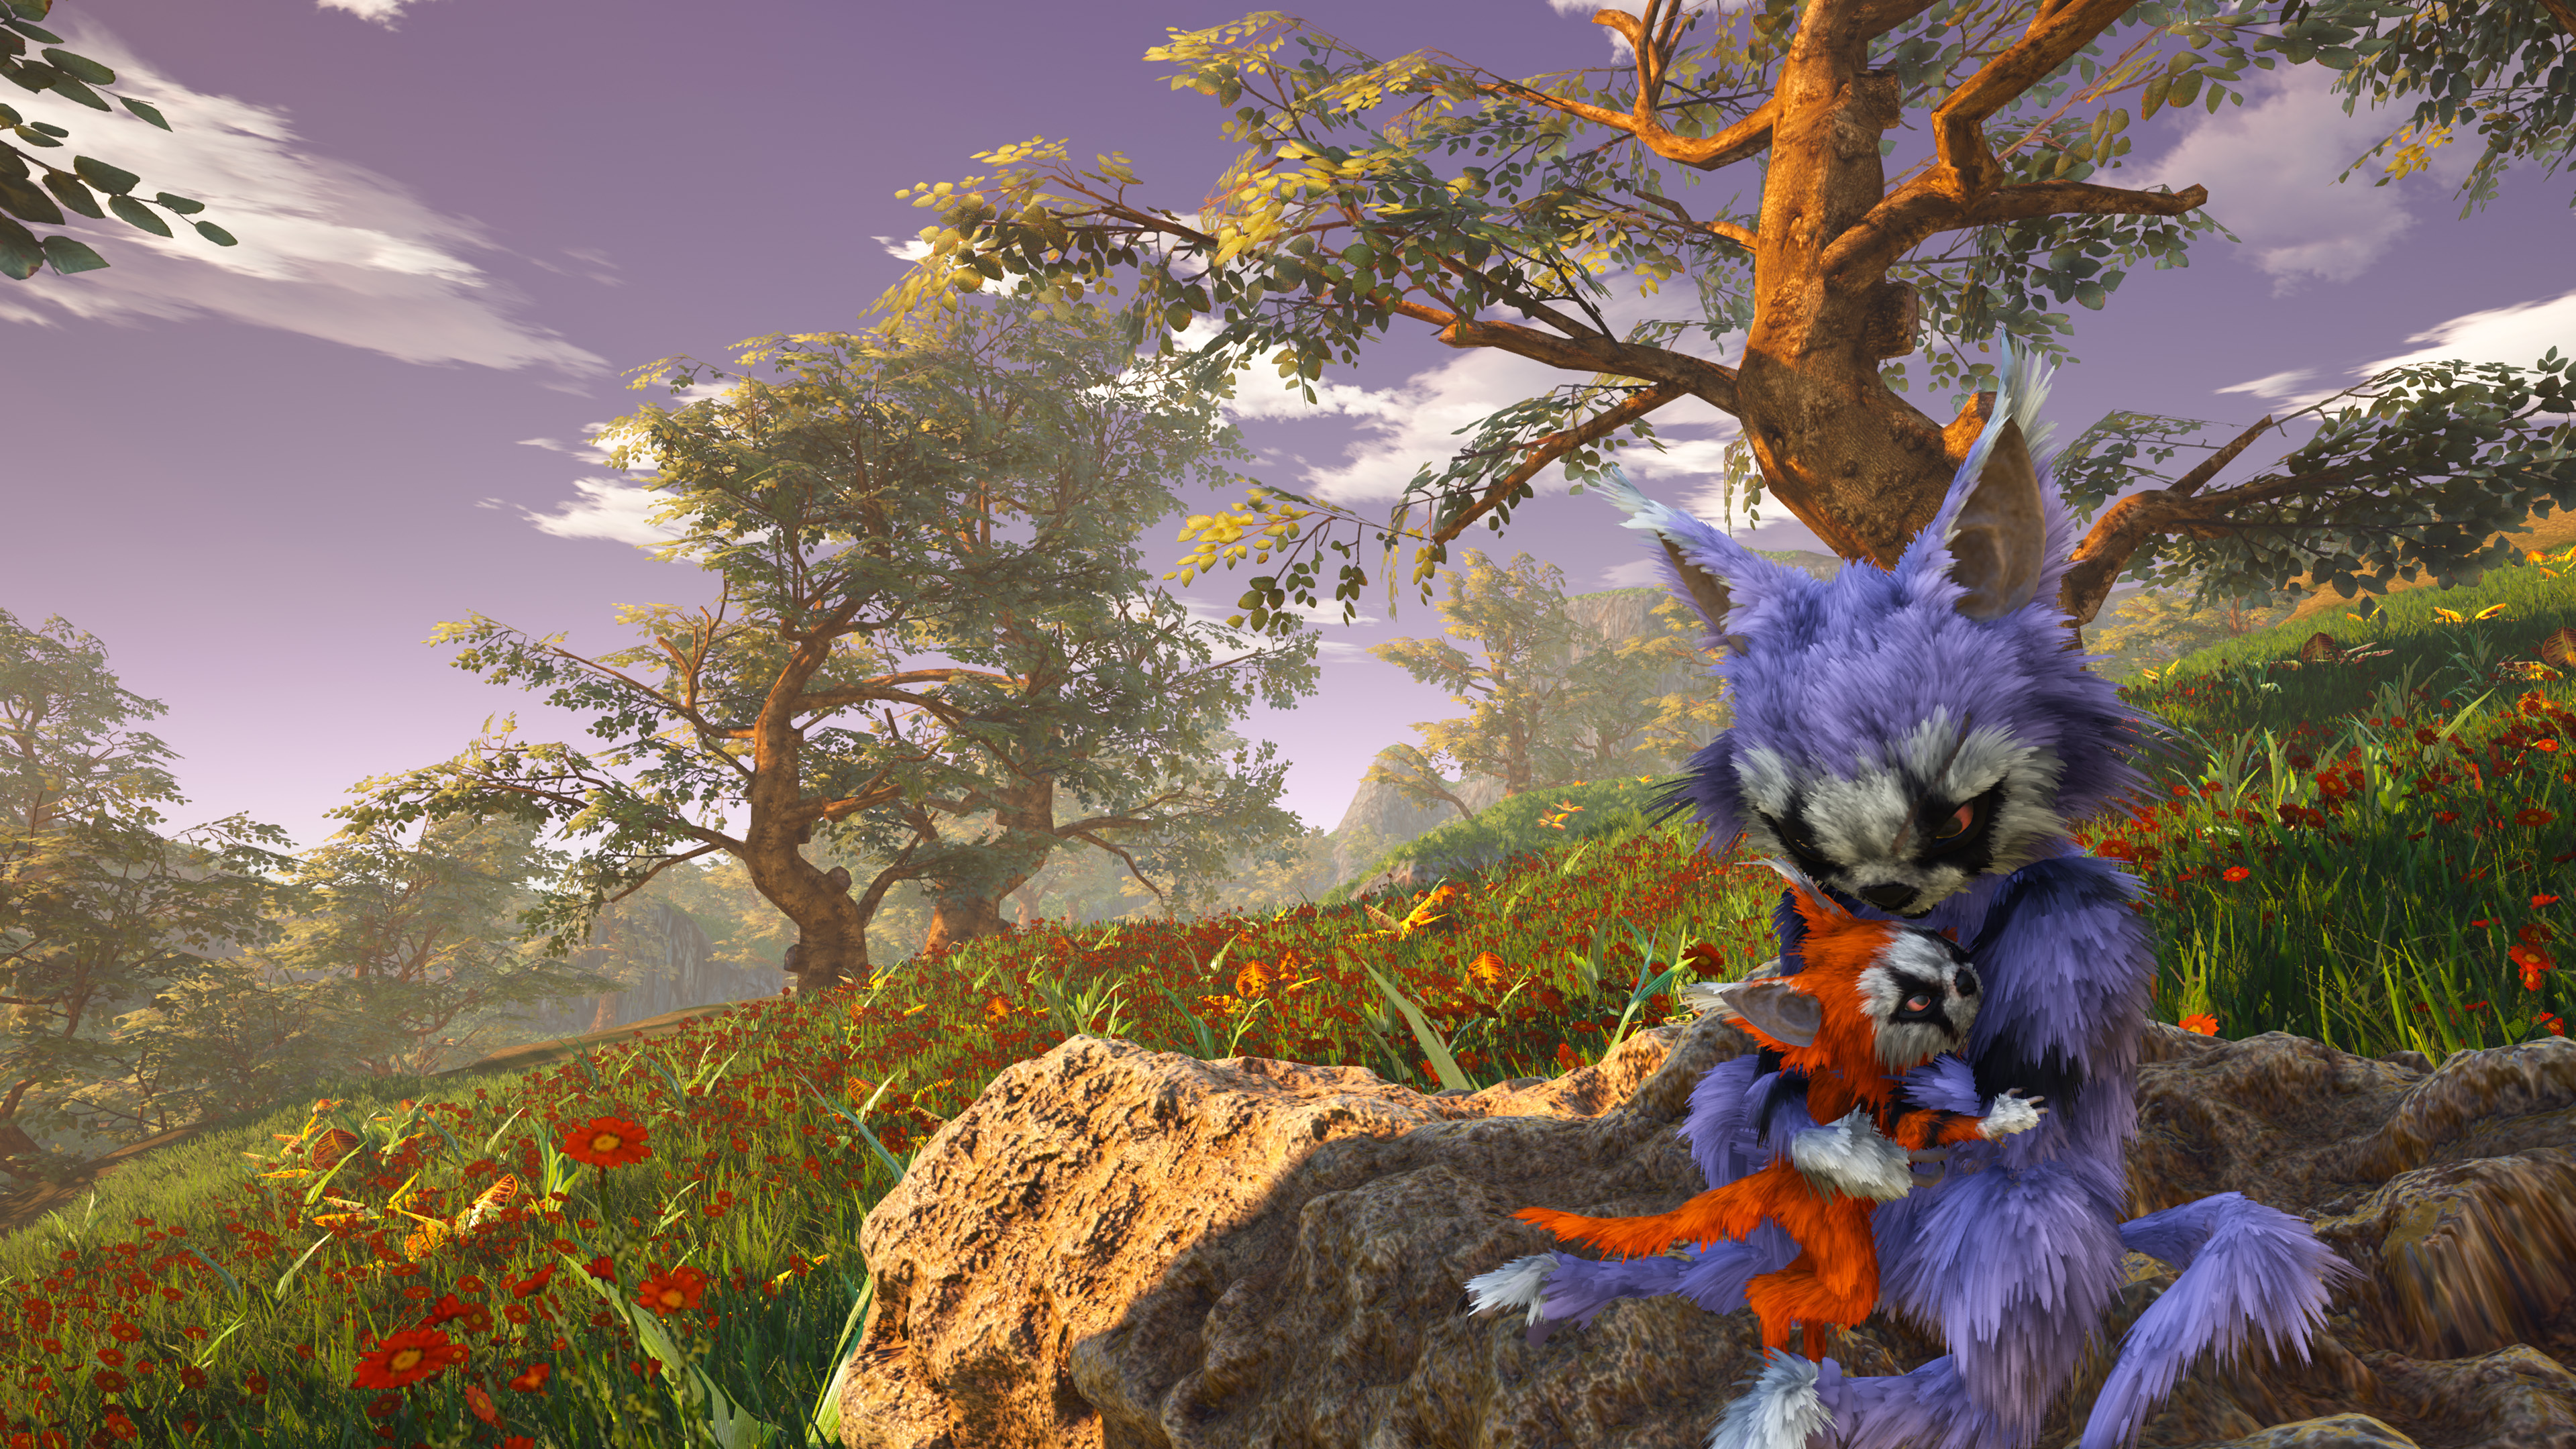 Biomutant has a brand new gameplay trailer